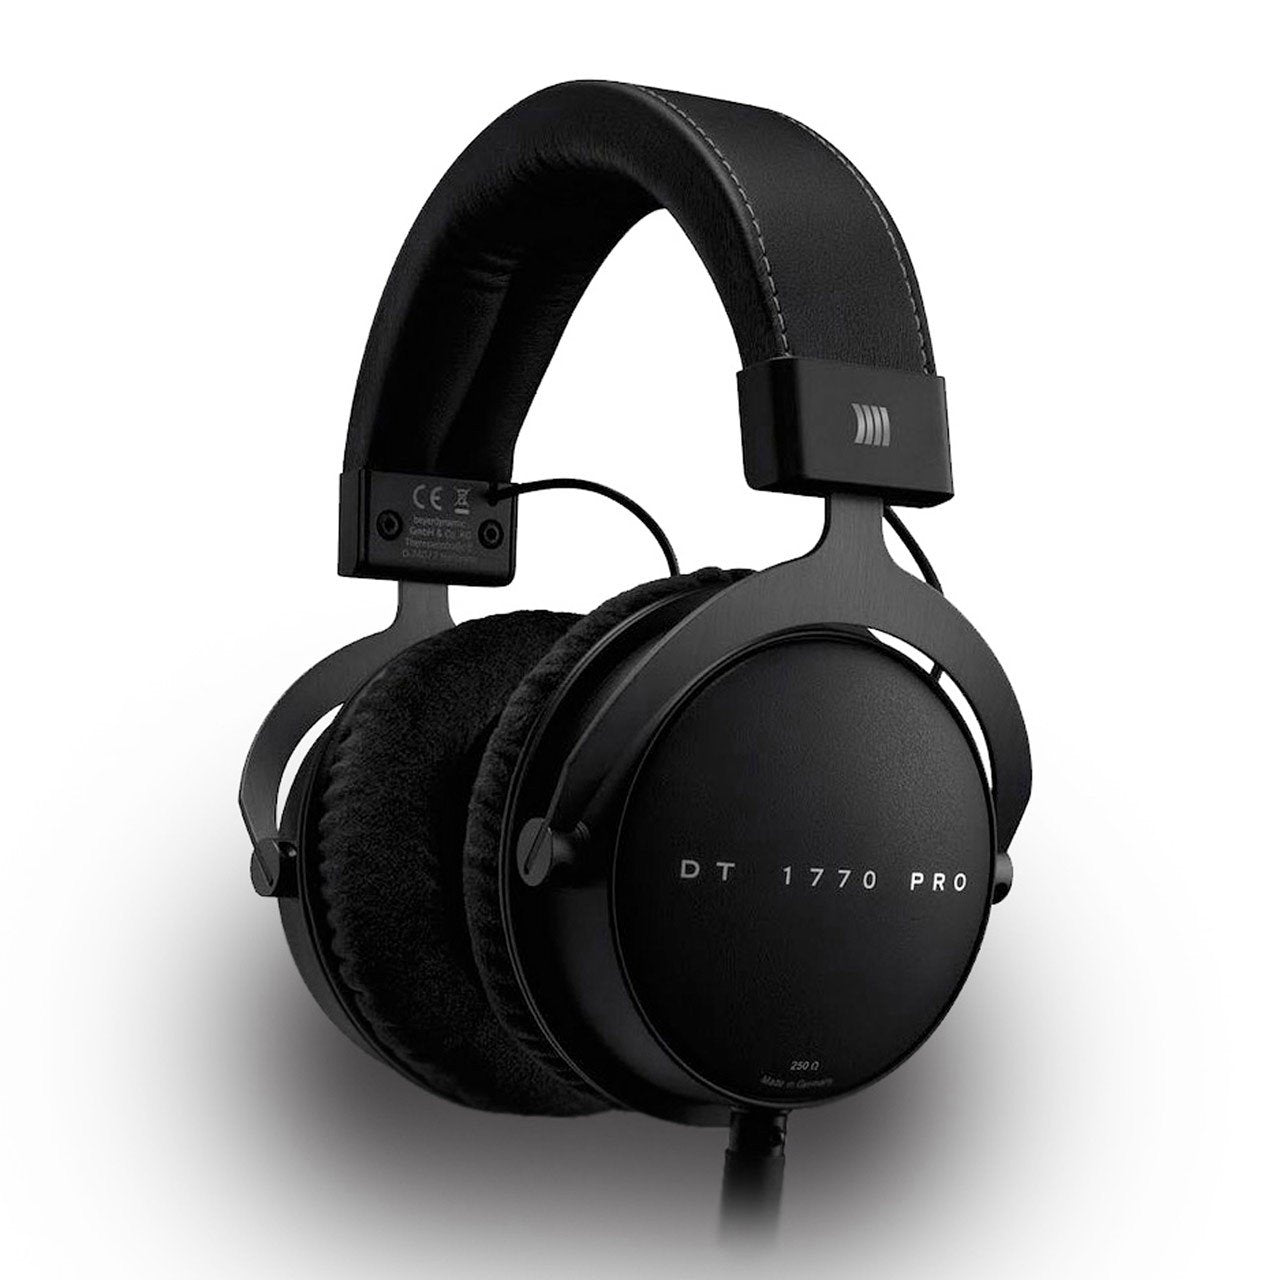 Closed Headphones - Beyerdynamic DT 1770 Pro Closed Studio Reference Headphones